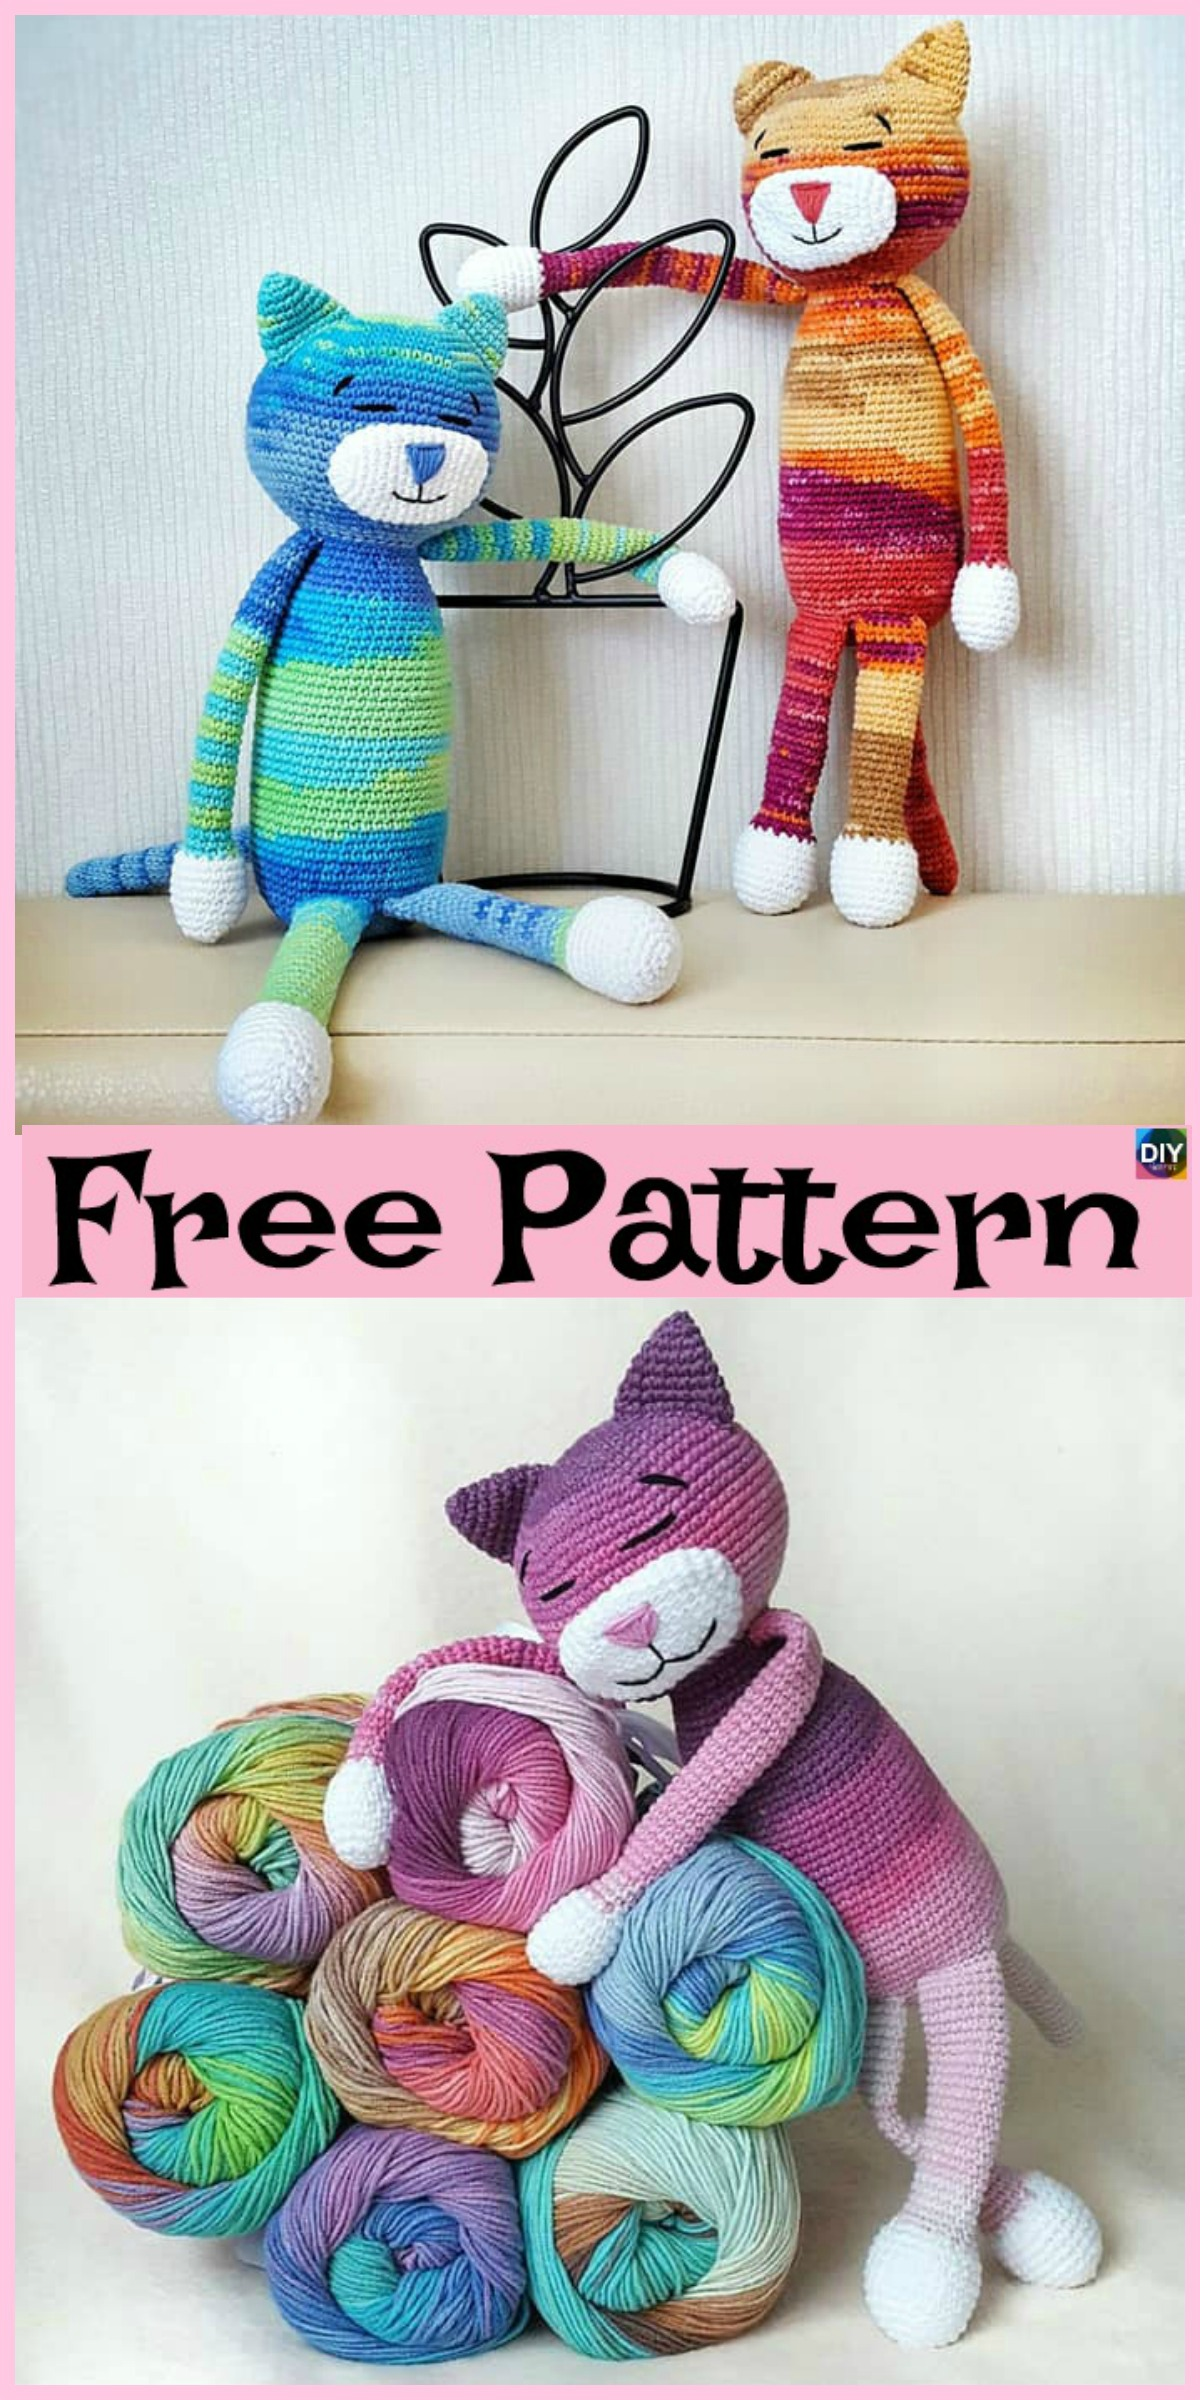 diy4ever-Crochet Large Ami Cat- Free Pattern